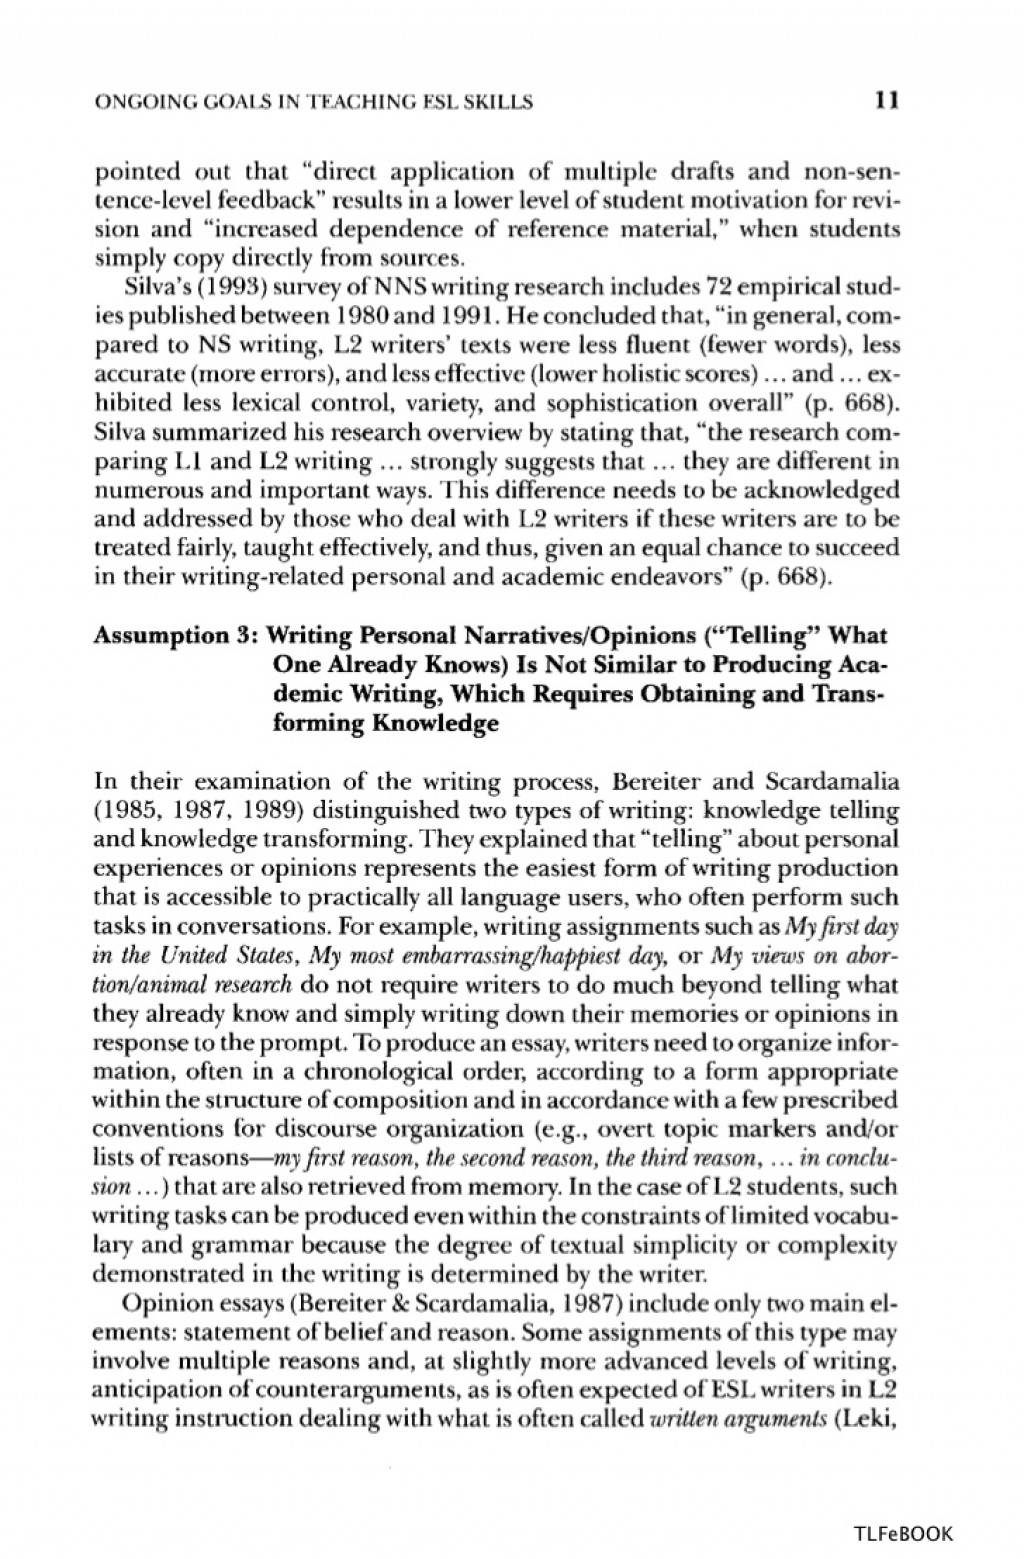 012 Essay About Family English Teaching Academic Esl Writing Practical Techniques In Vocabulary And Grammar Shocking History Influence On Values First Foremost Large